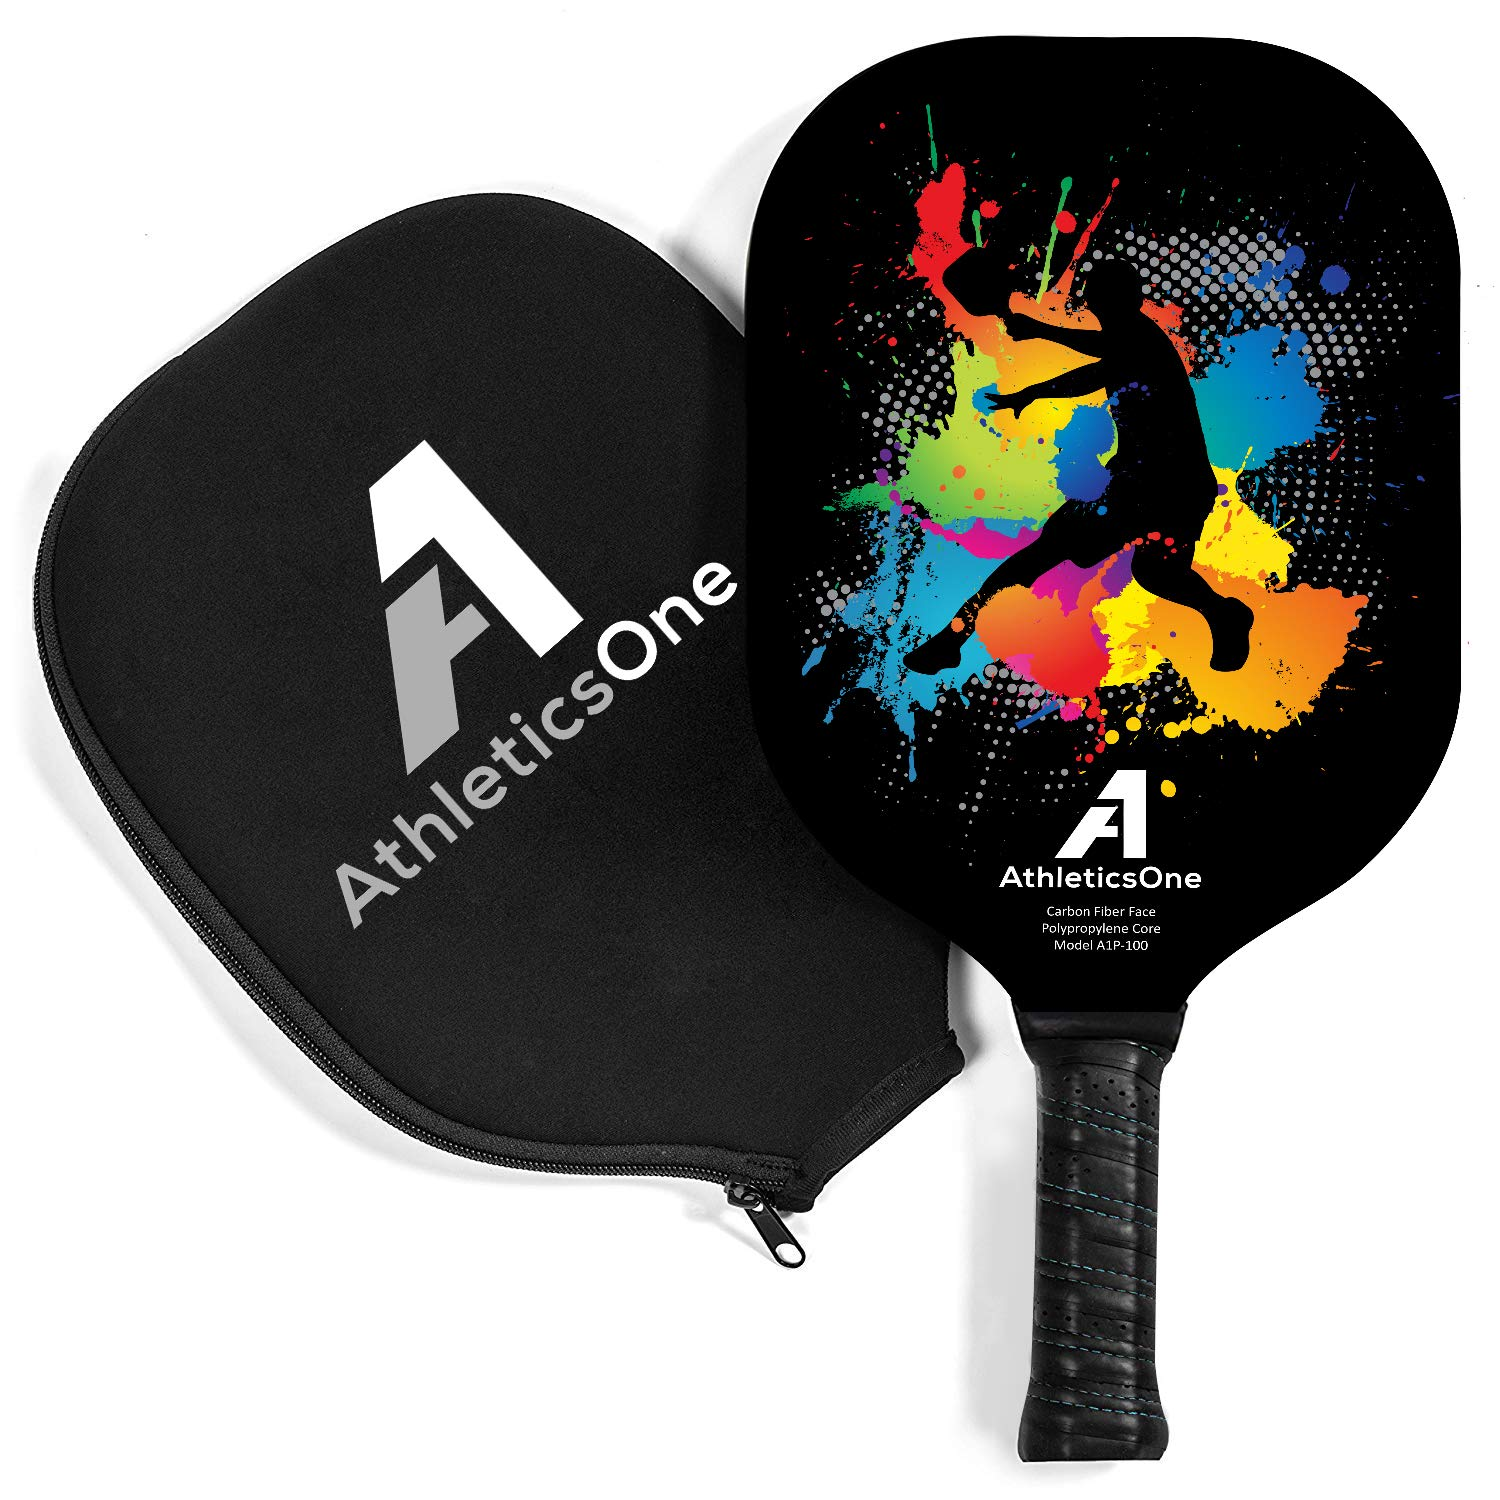 Polymer Honeycomb Core Premium Neoprene Cover Included. AthleticsOne Pickleball Paddle Graphite Face Lightweight with The Perfect Balance Between Power and Ball Control